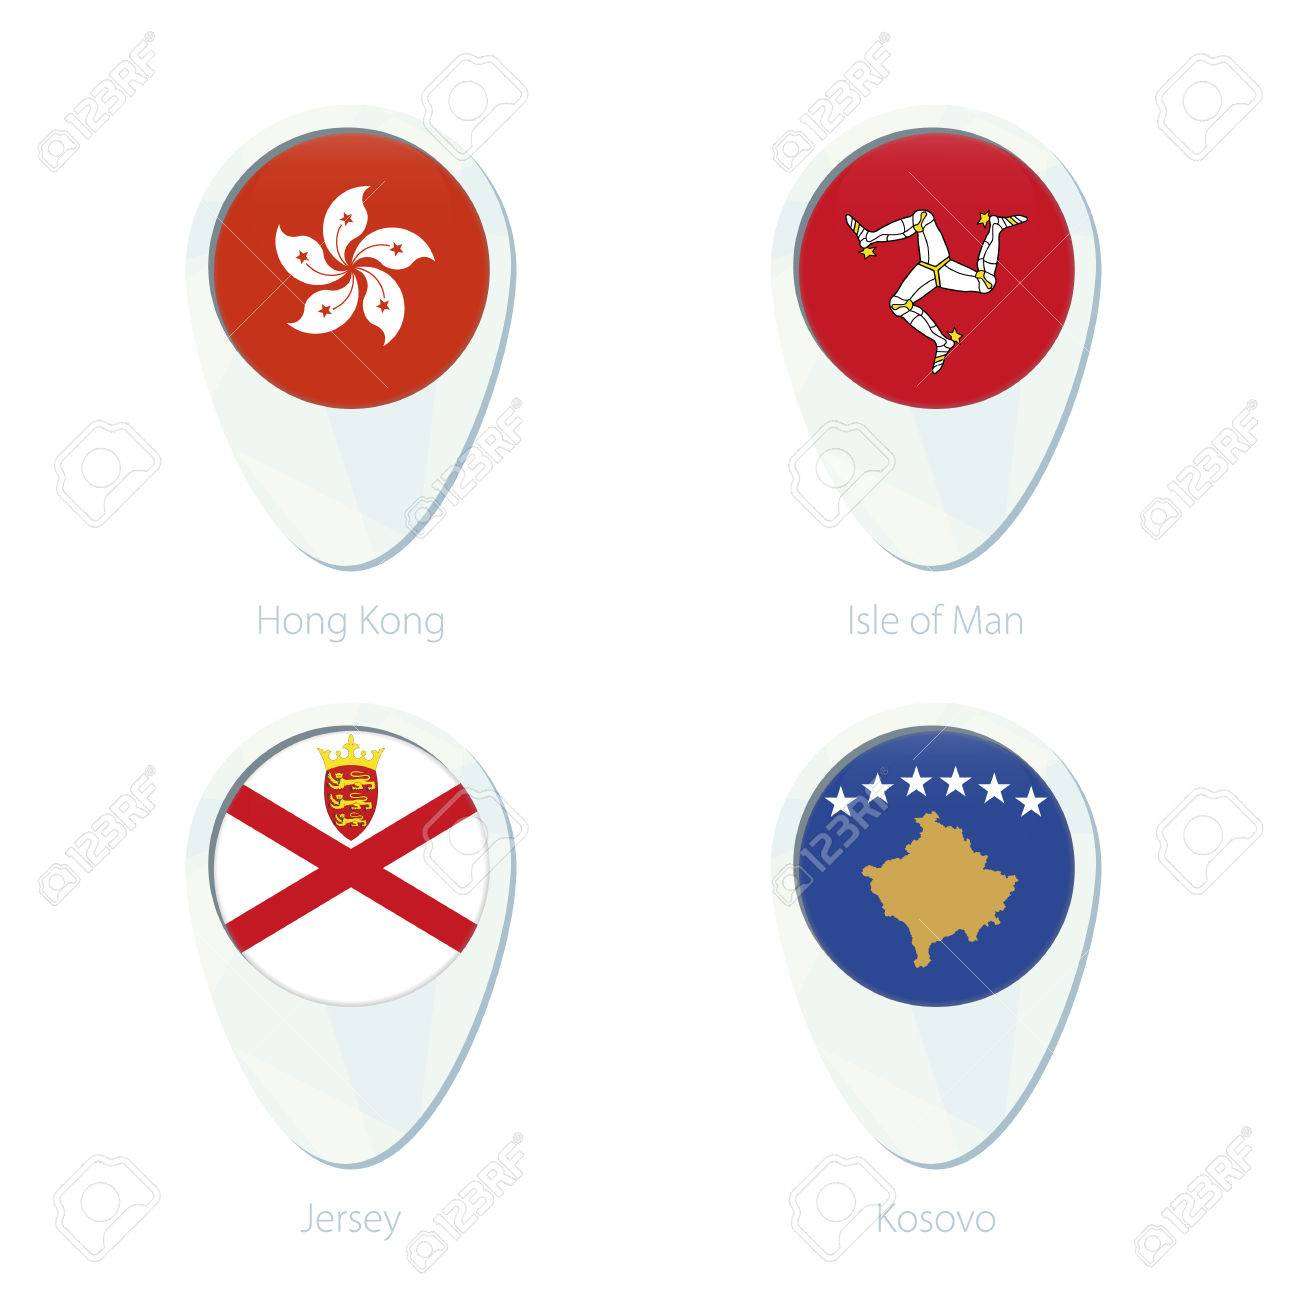 Hong Kong Isle Of Man Jersey Kosovo Flag Location Map Pin